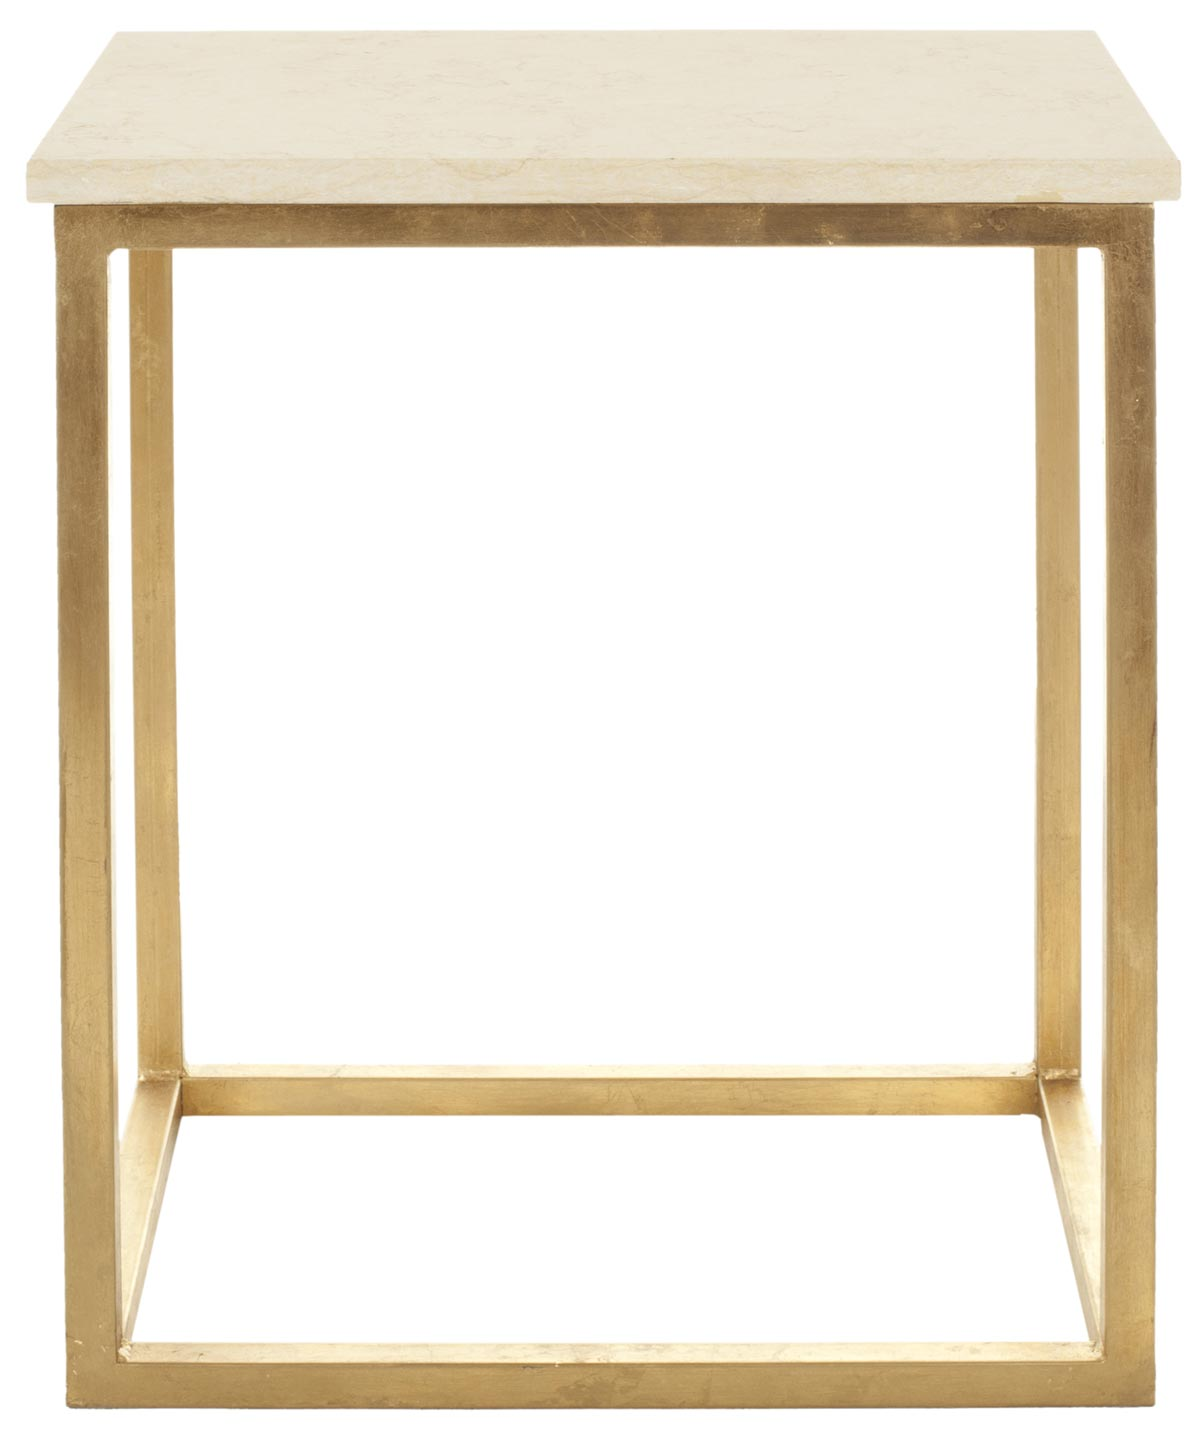 accent tables furniture safavieh gold table share this product paint storage cabinet sofa with baskets glass top entry tin side small pine mainstays coffee round farmhouse dining